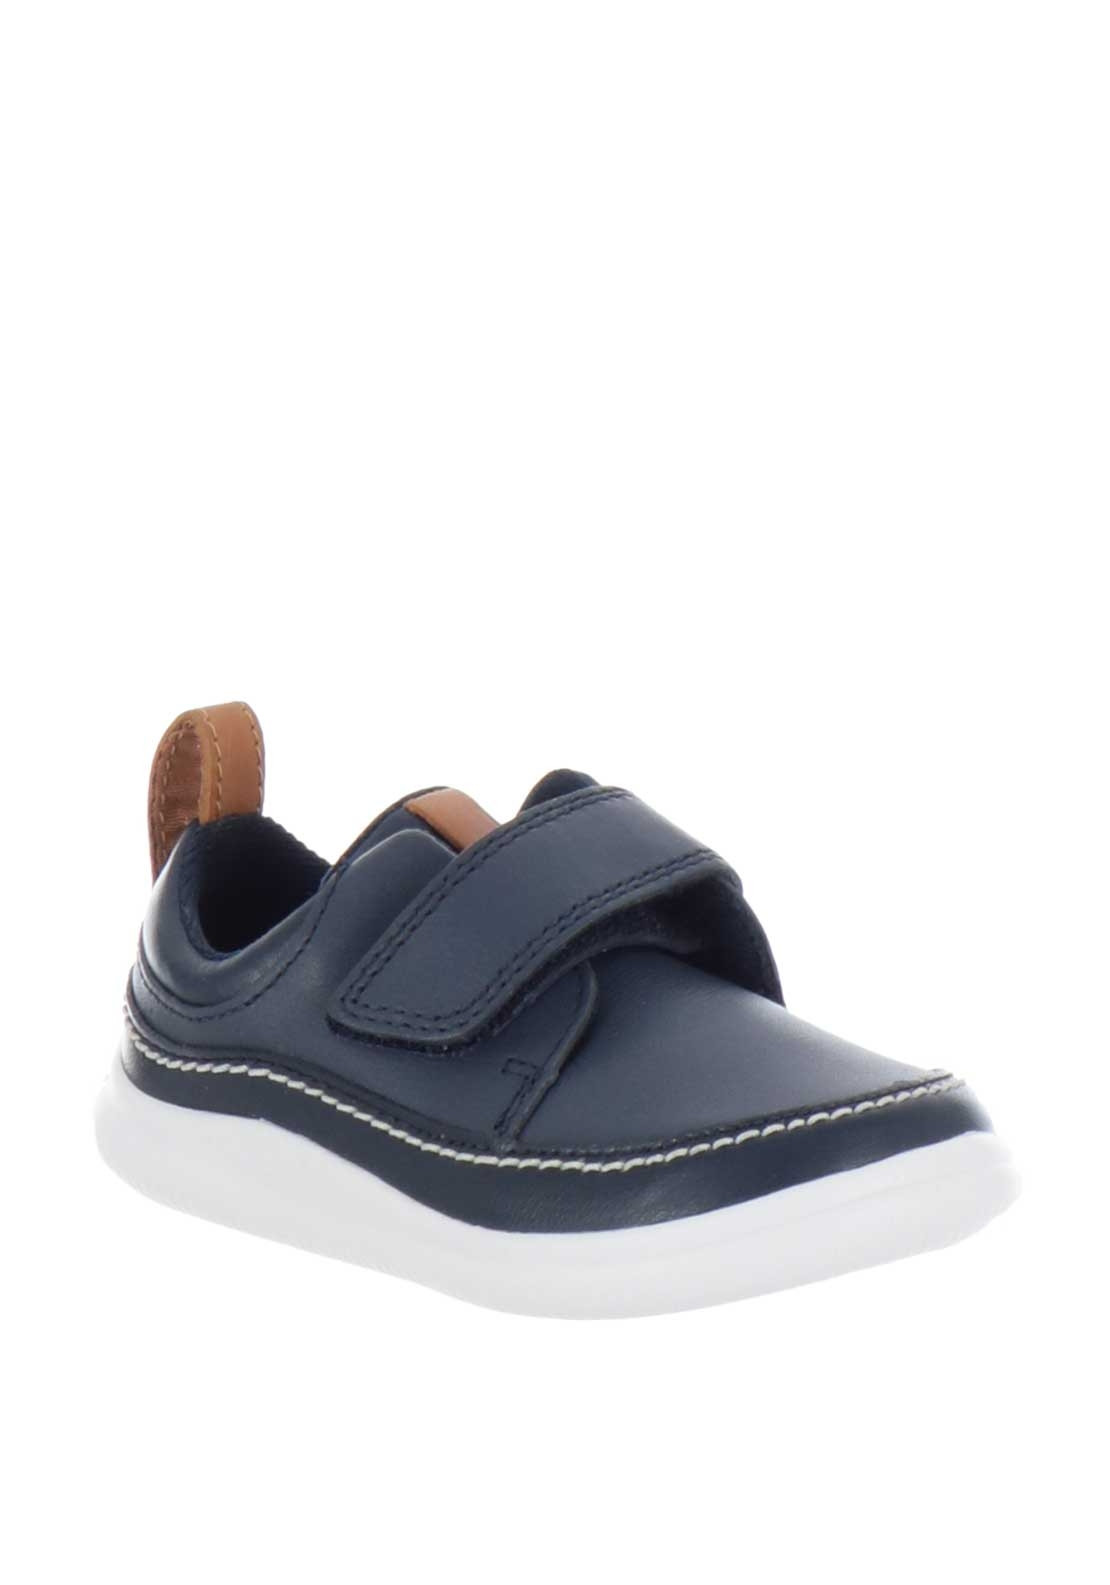 fc6a01458a99 Clarks Baby Boys Cloud Ember Velcro Shoes